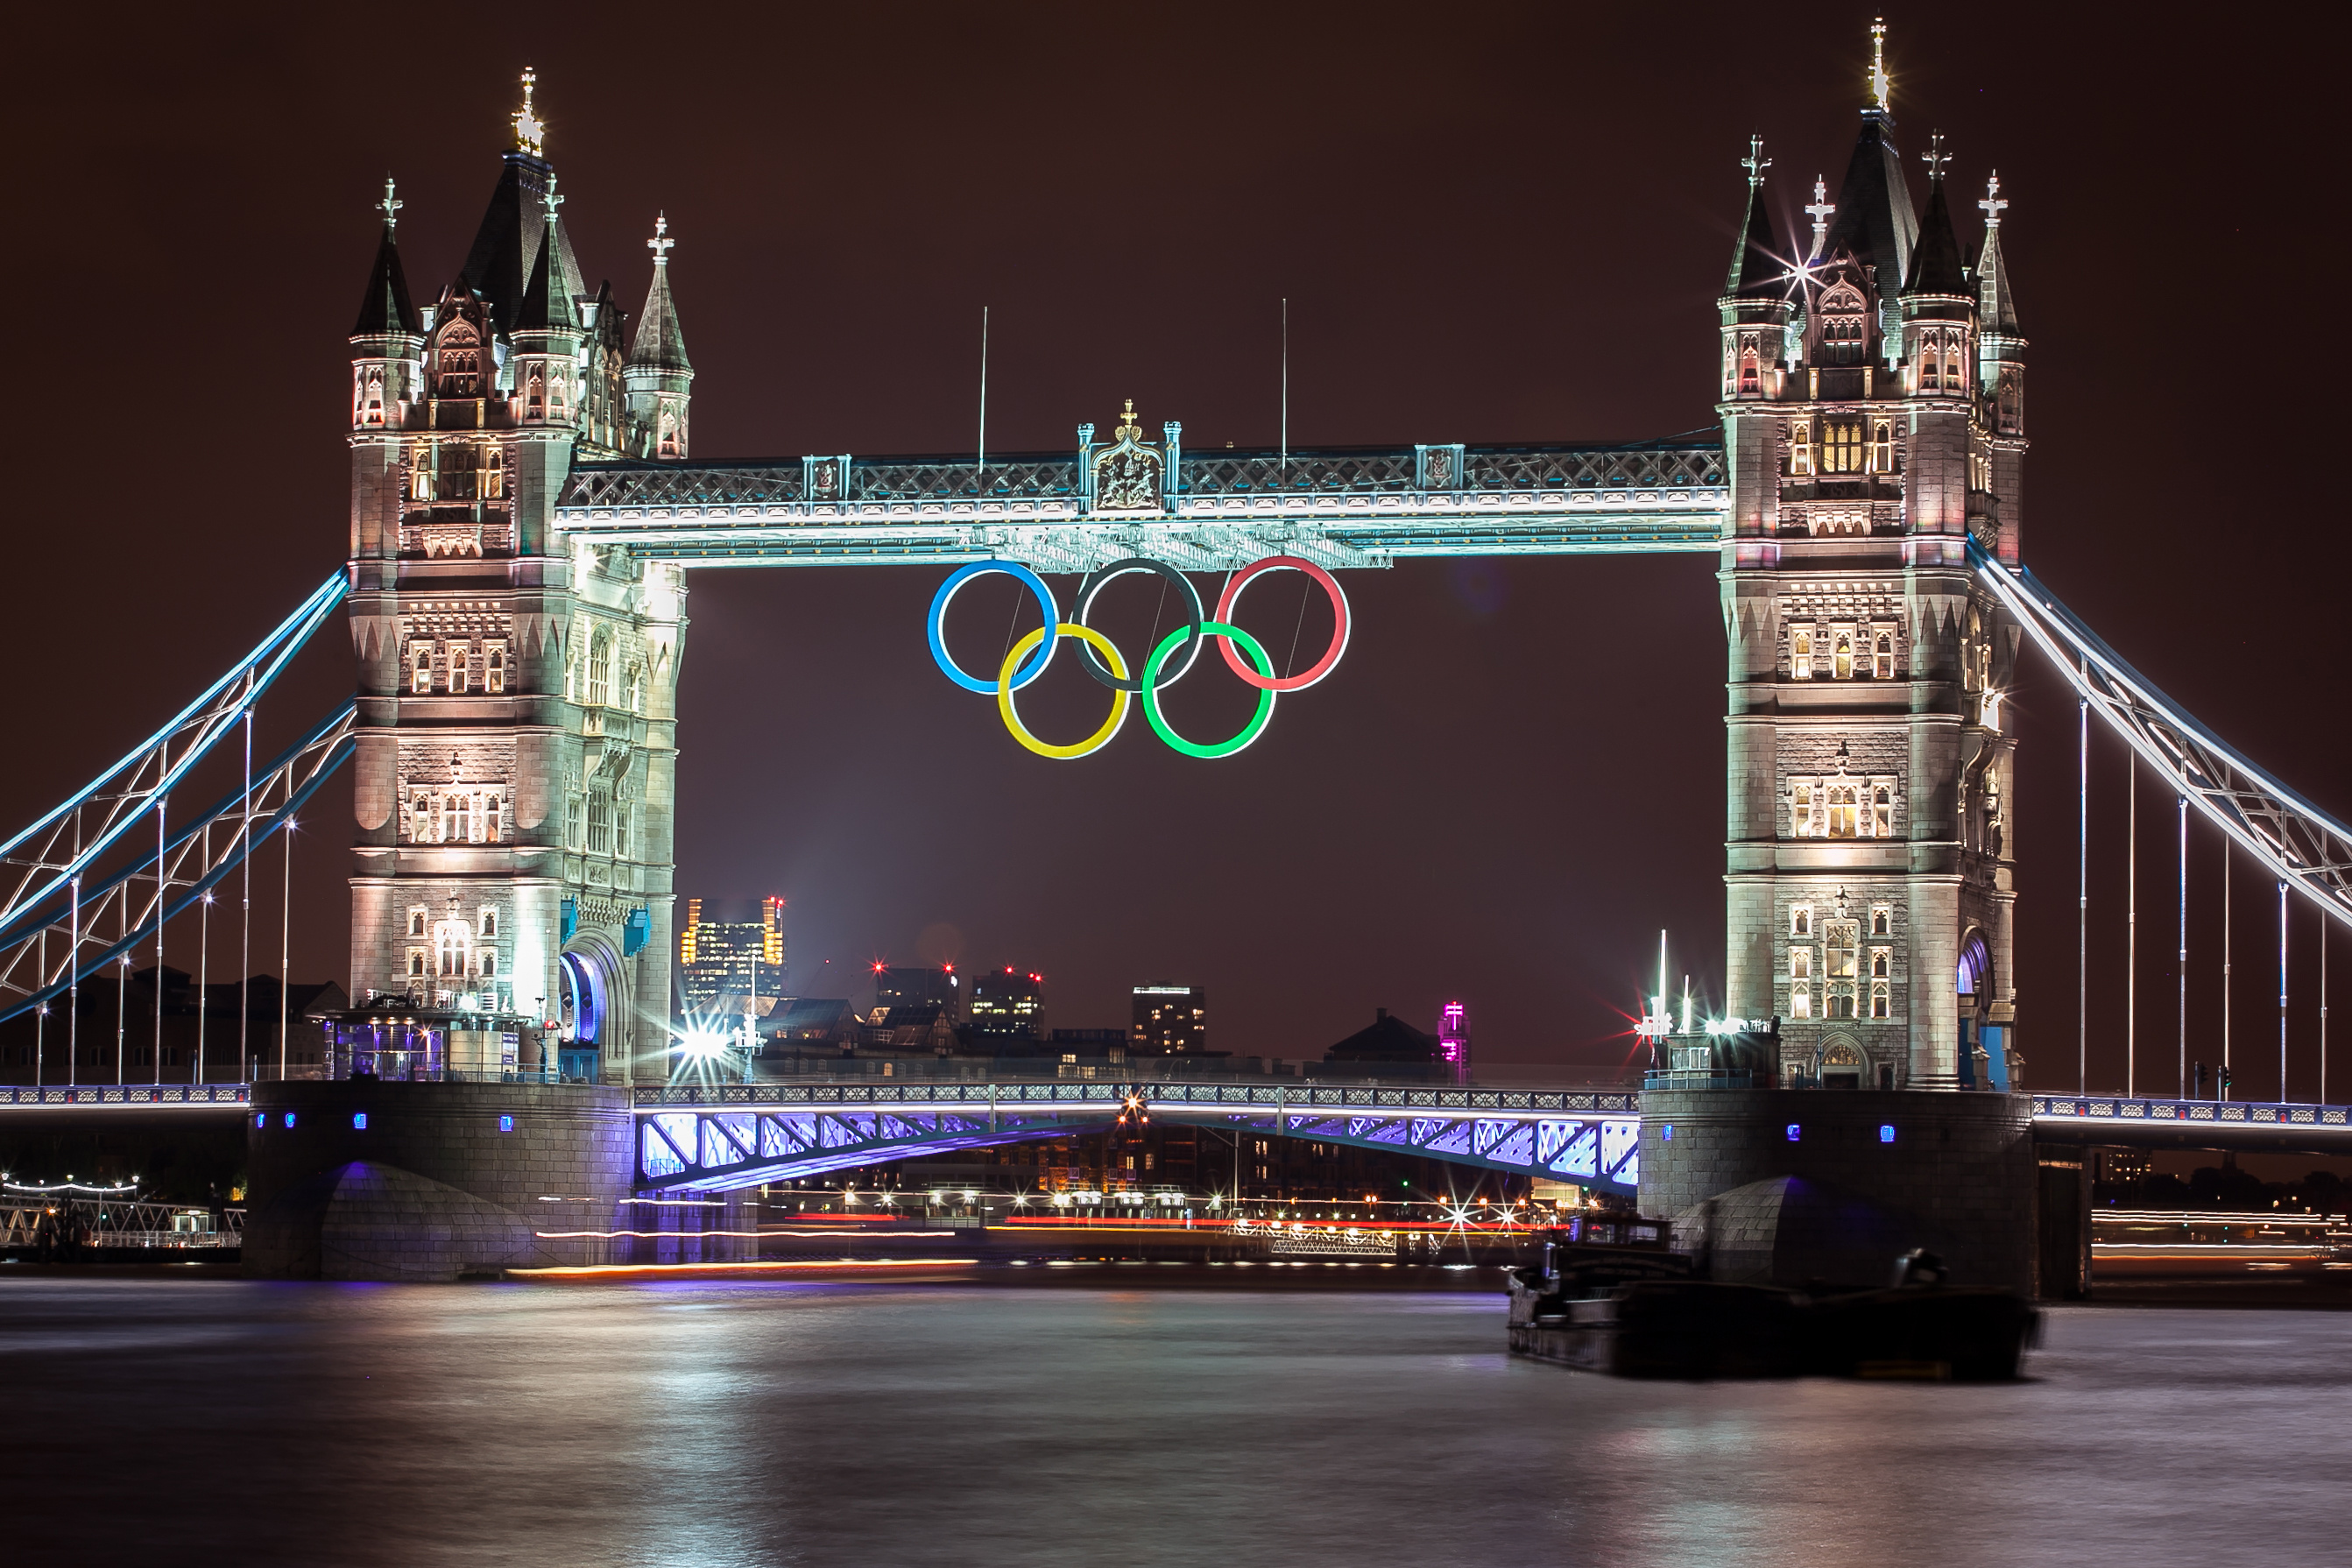 Team GB is streaming the London 2012 Olympics opening ceremony today